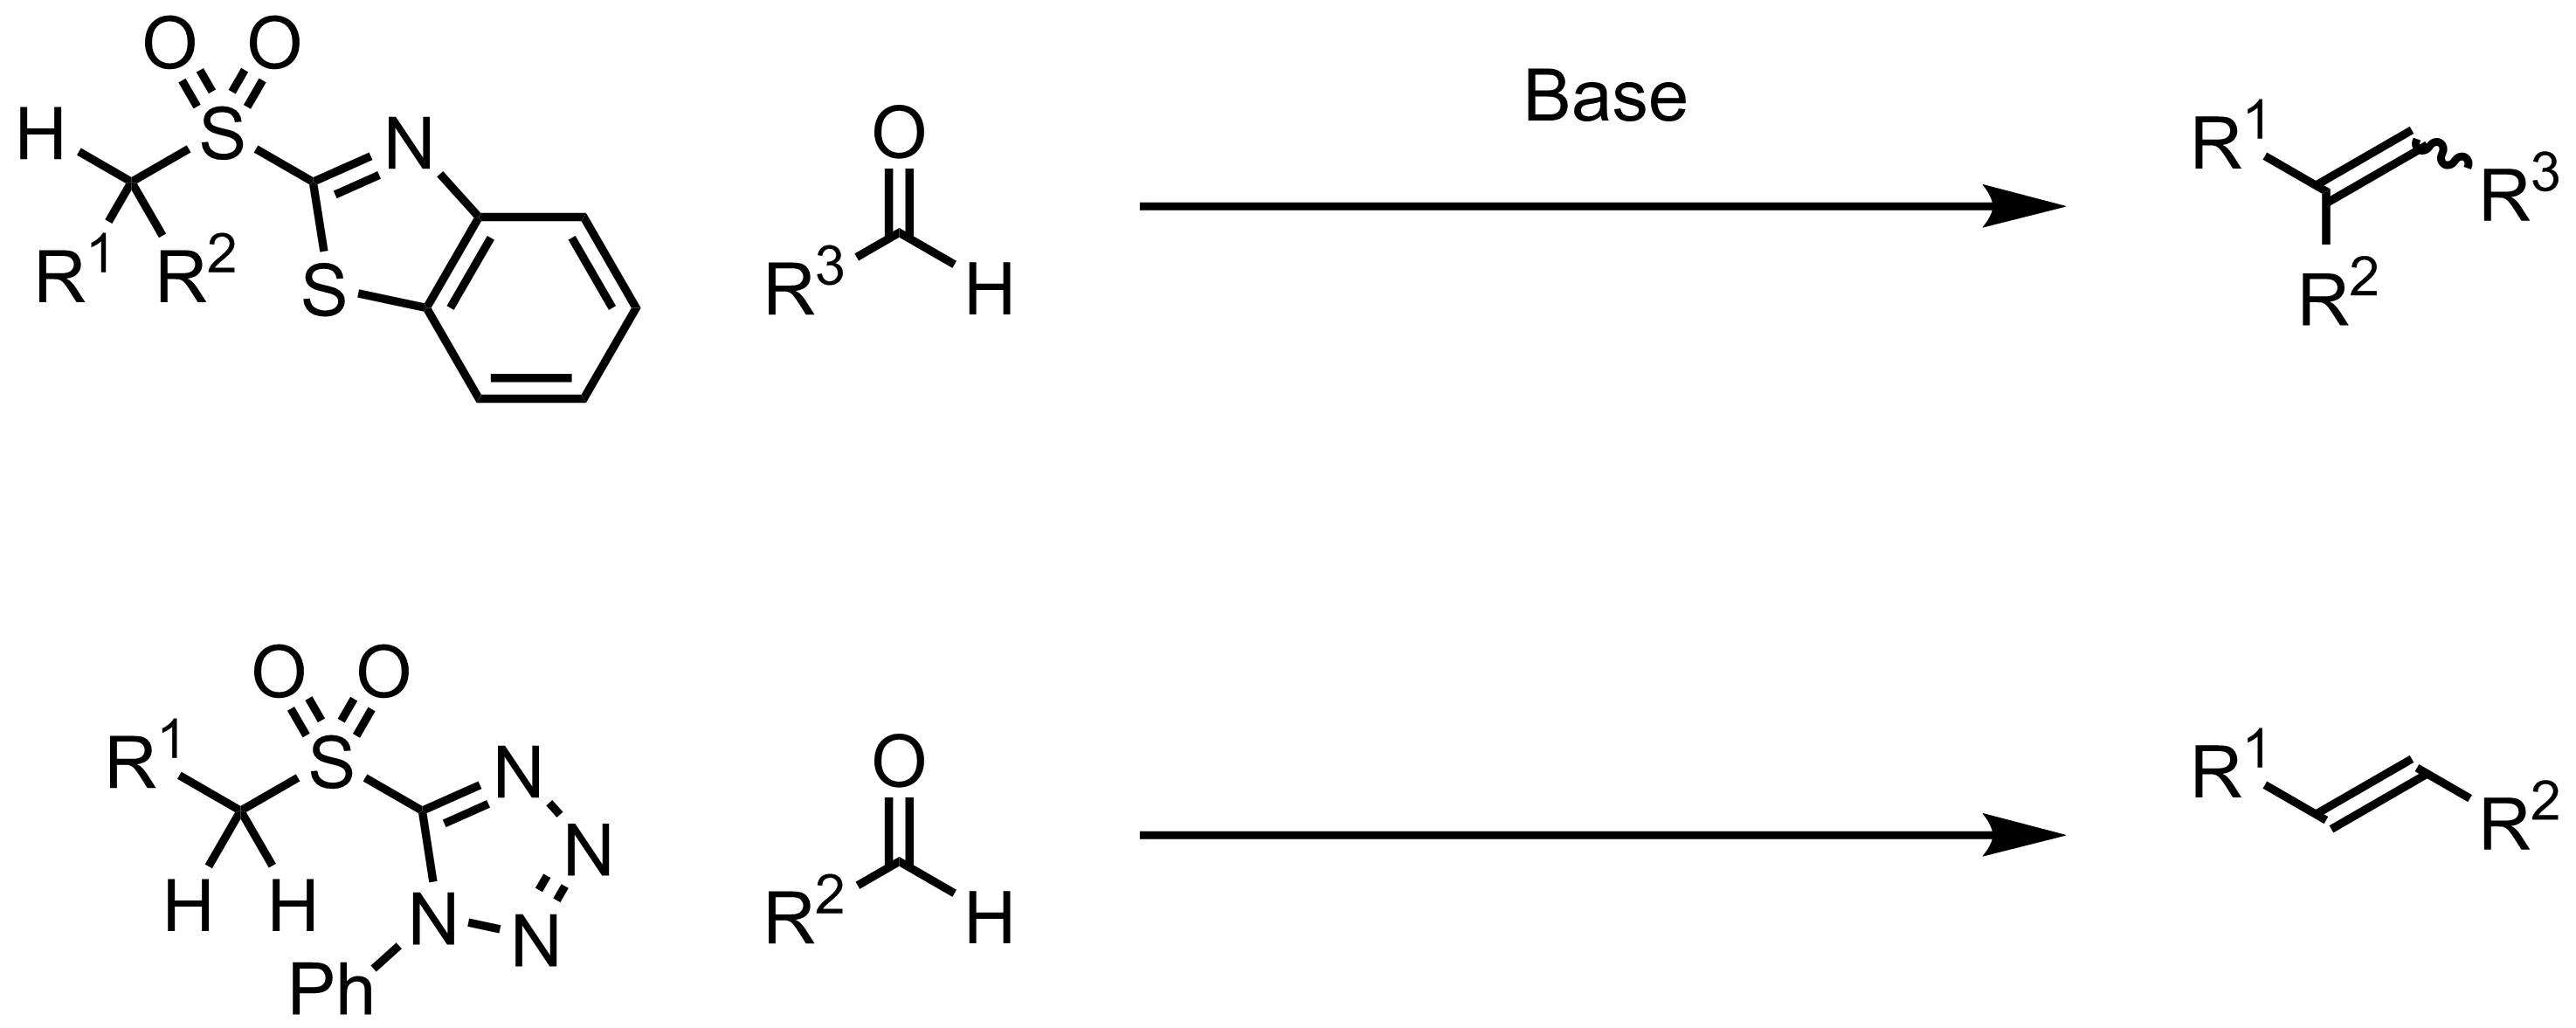 Schematic representation of the Julia-Kociensky Olefination.